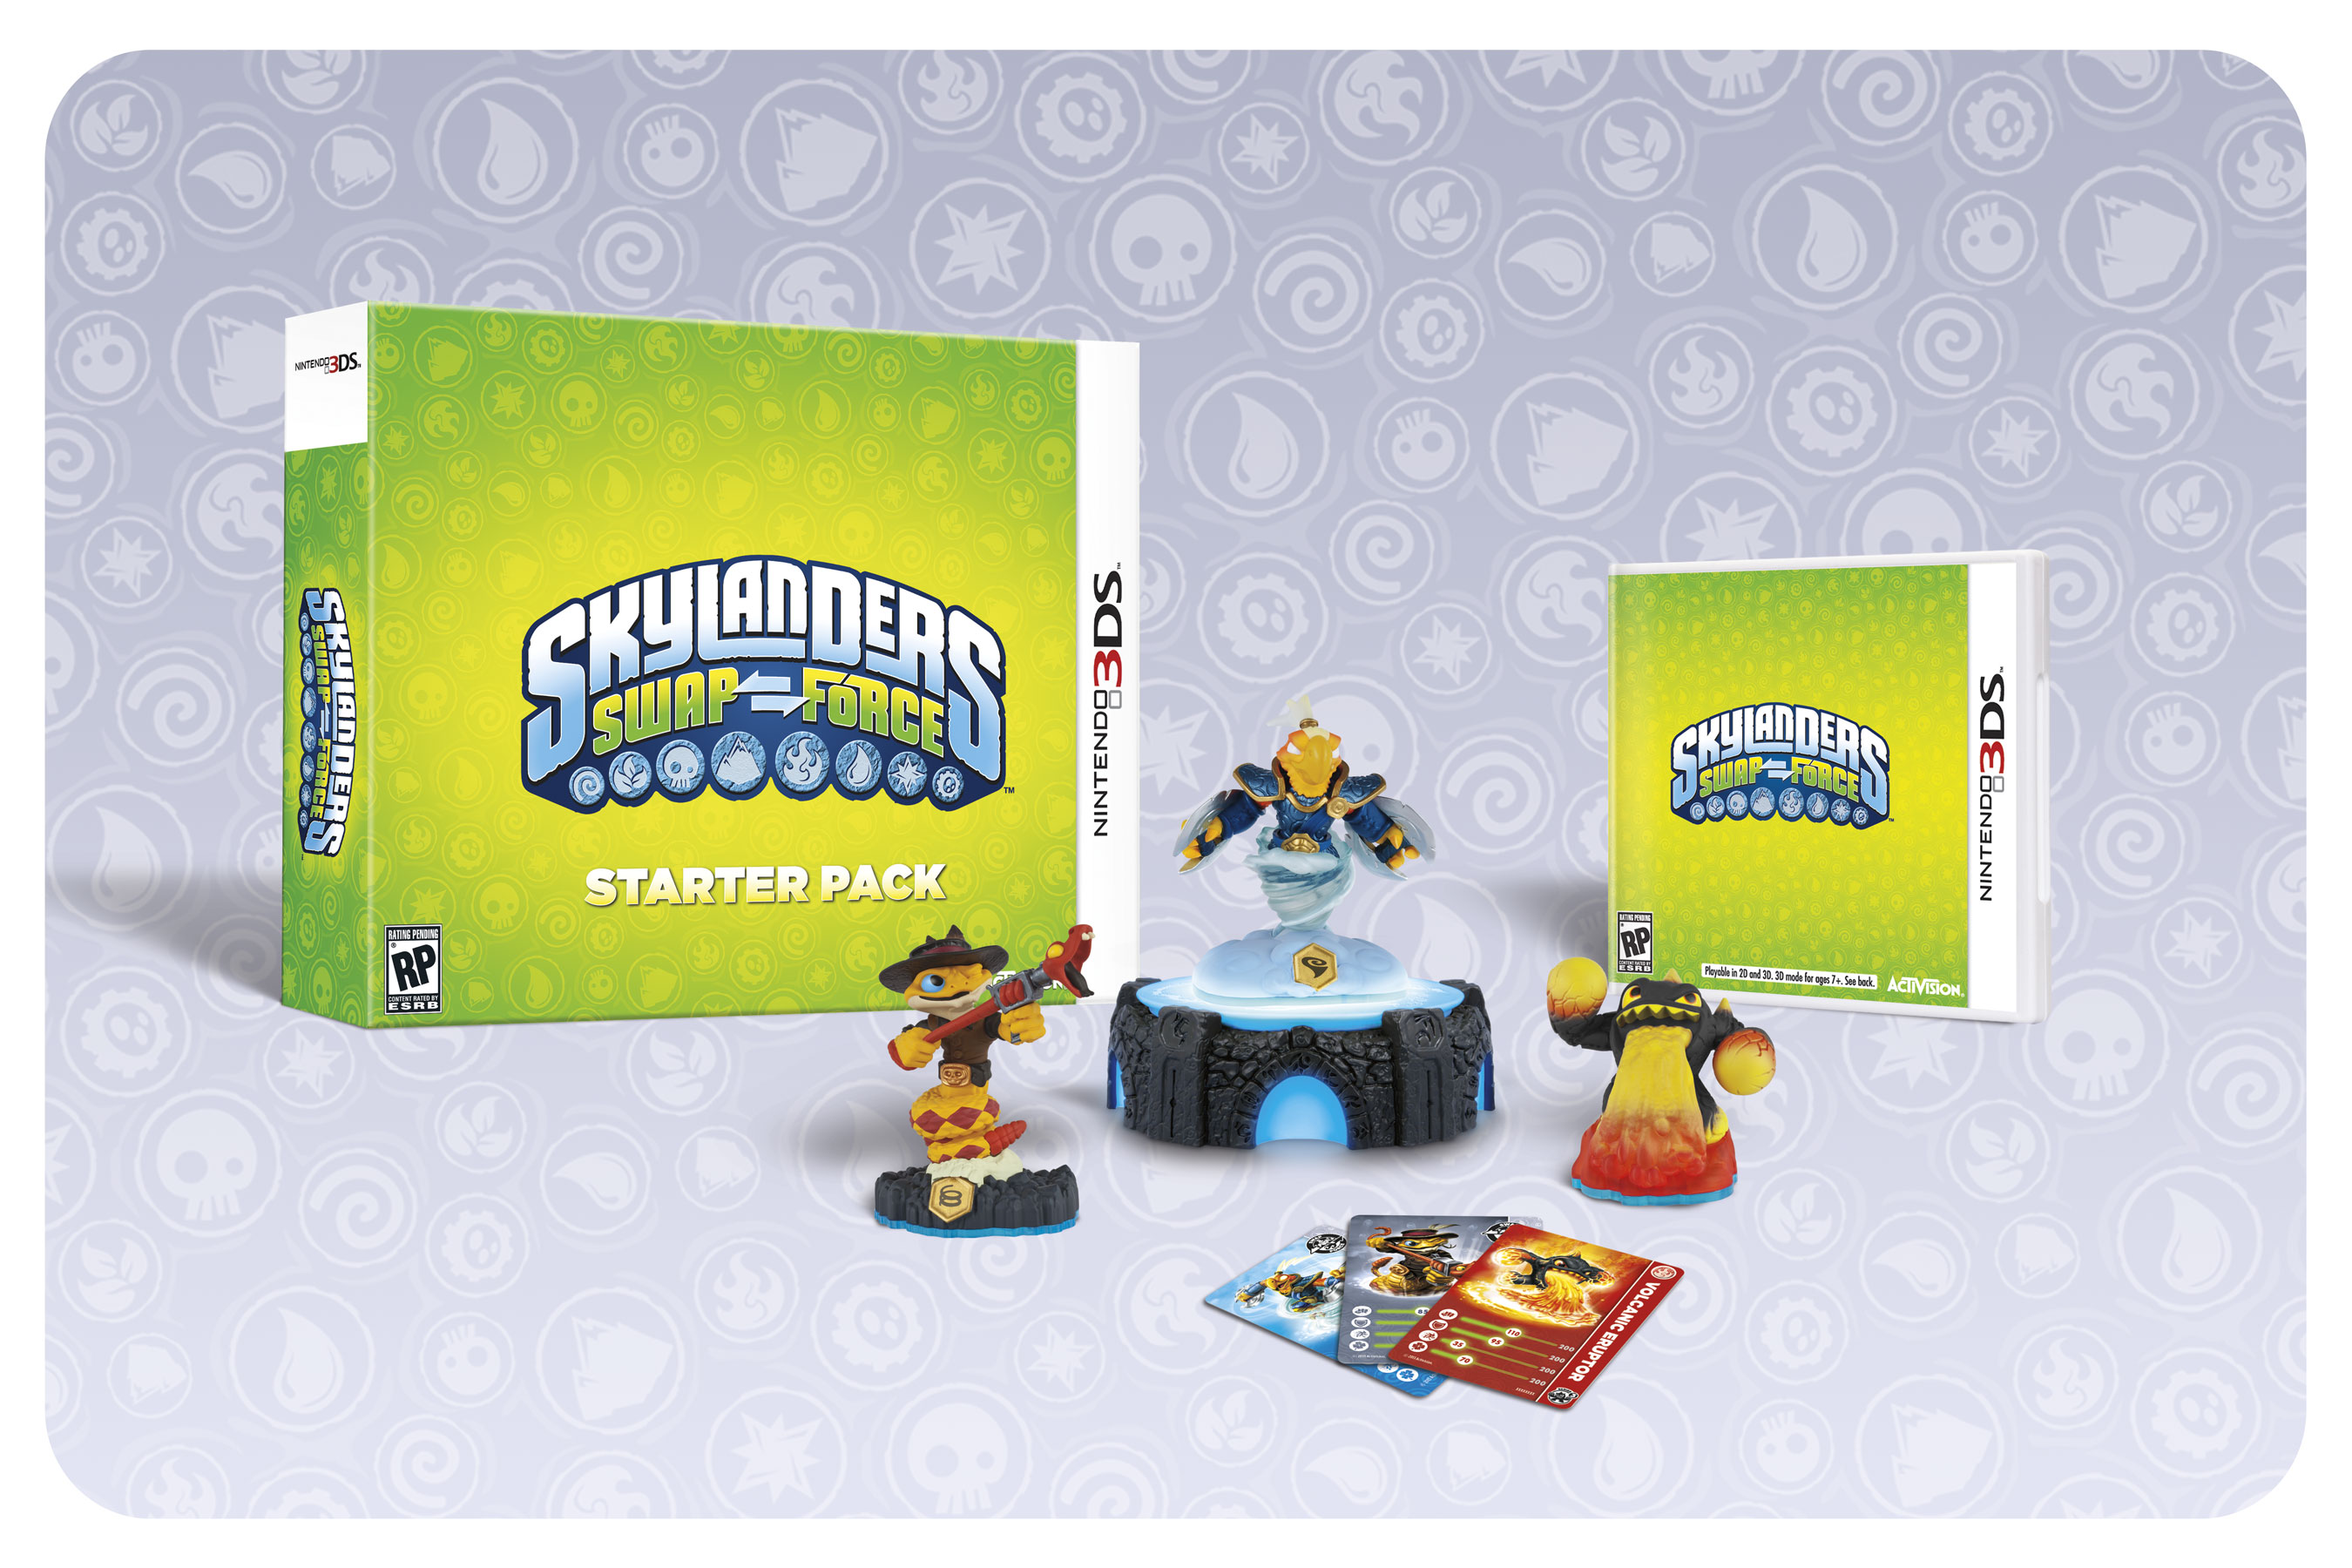 Test de skylanders swap force xbox 360 ps3 3ds wii u xbox one ps4 page 1 gamalive - Jeu de skylanders swap force gratuit ...